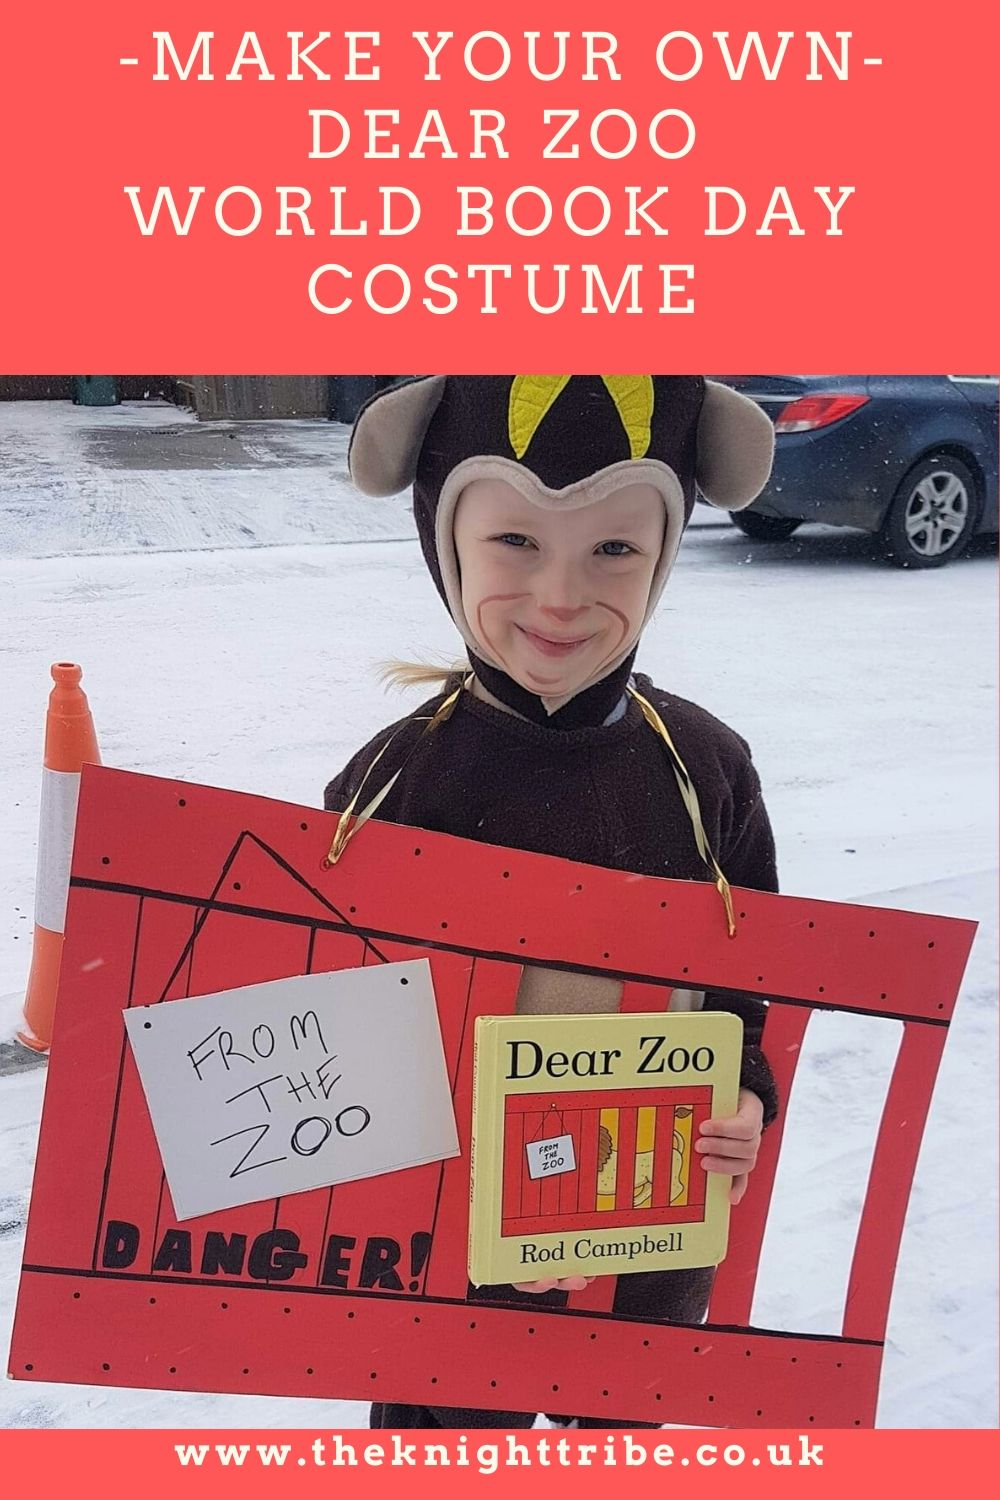 World book day costume